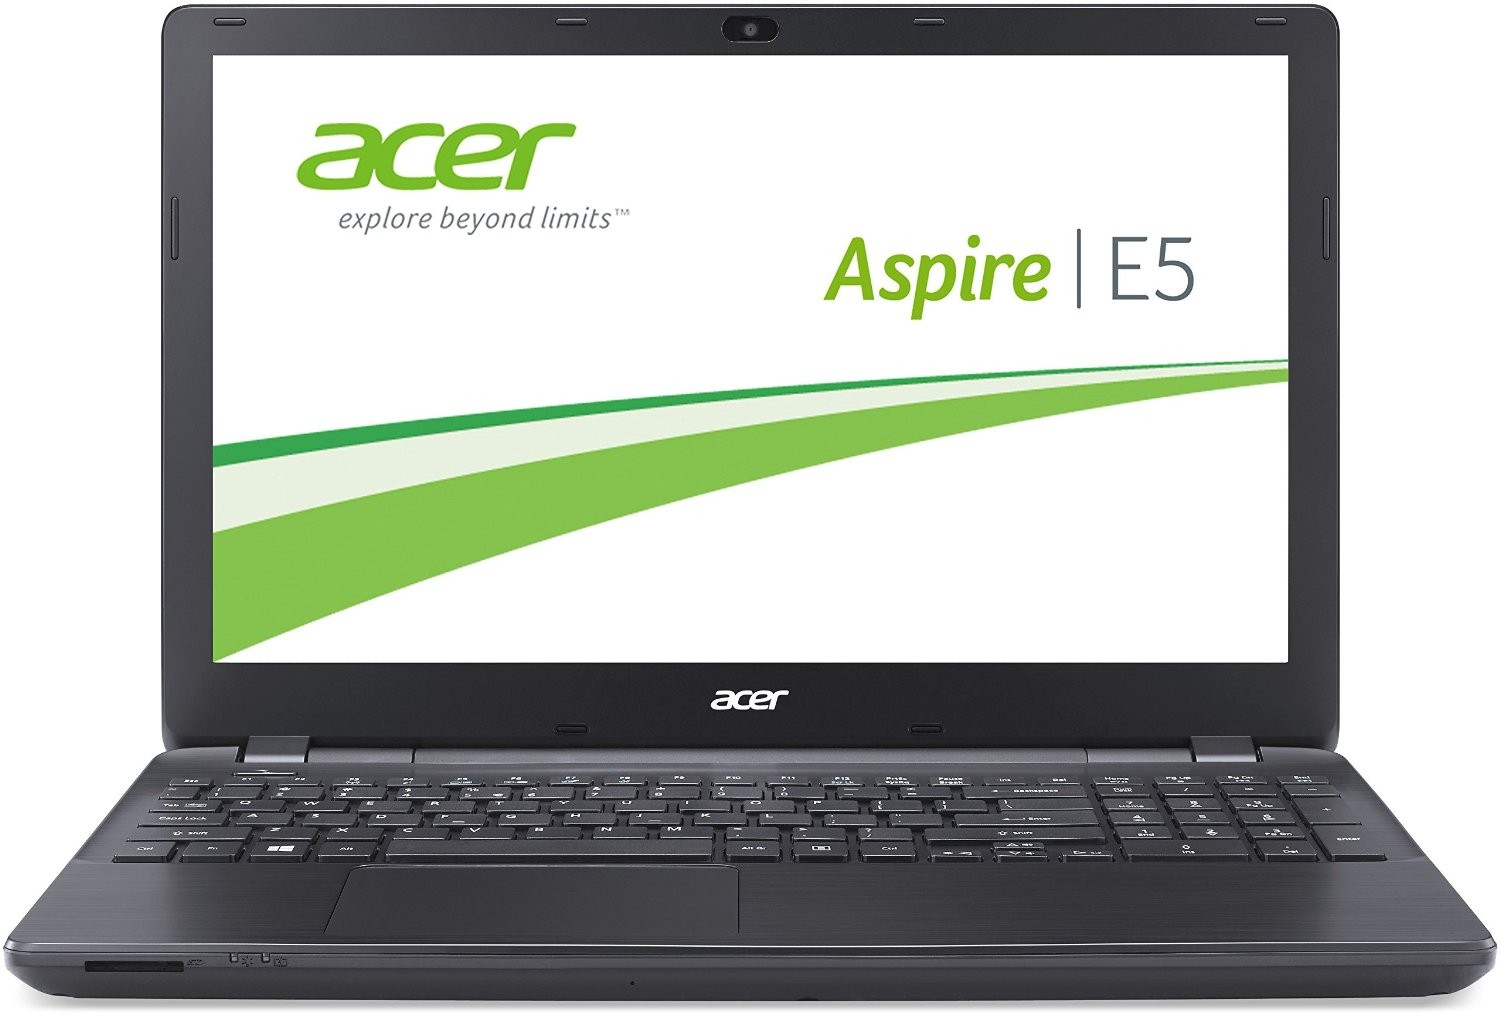 Acer Aspire E5-571G-51TH 15,6 Zoll Notebook